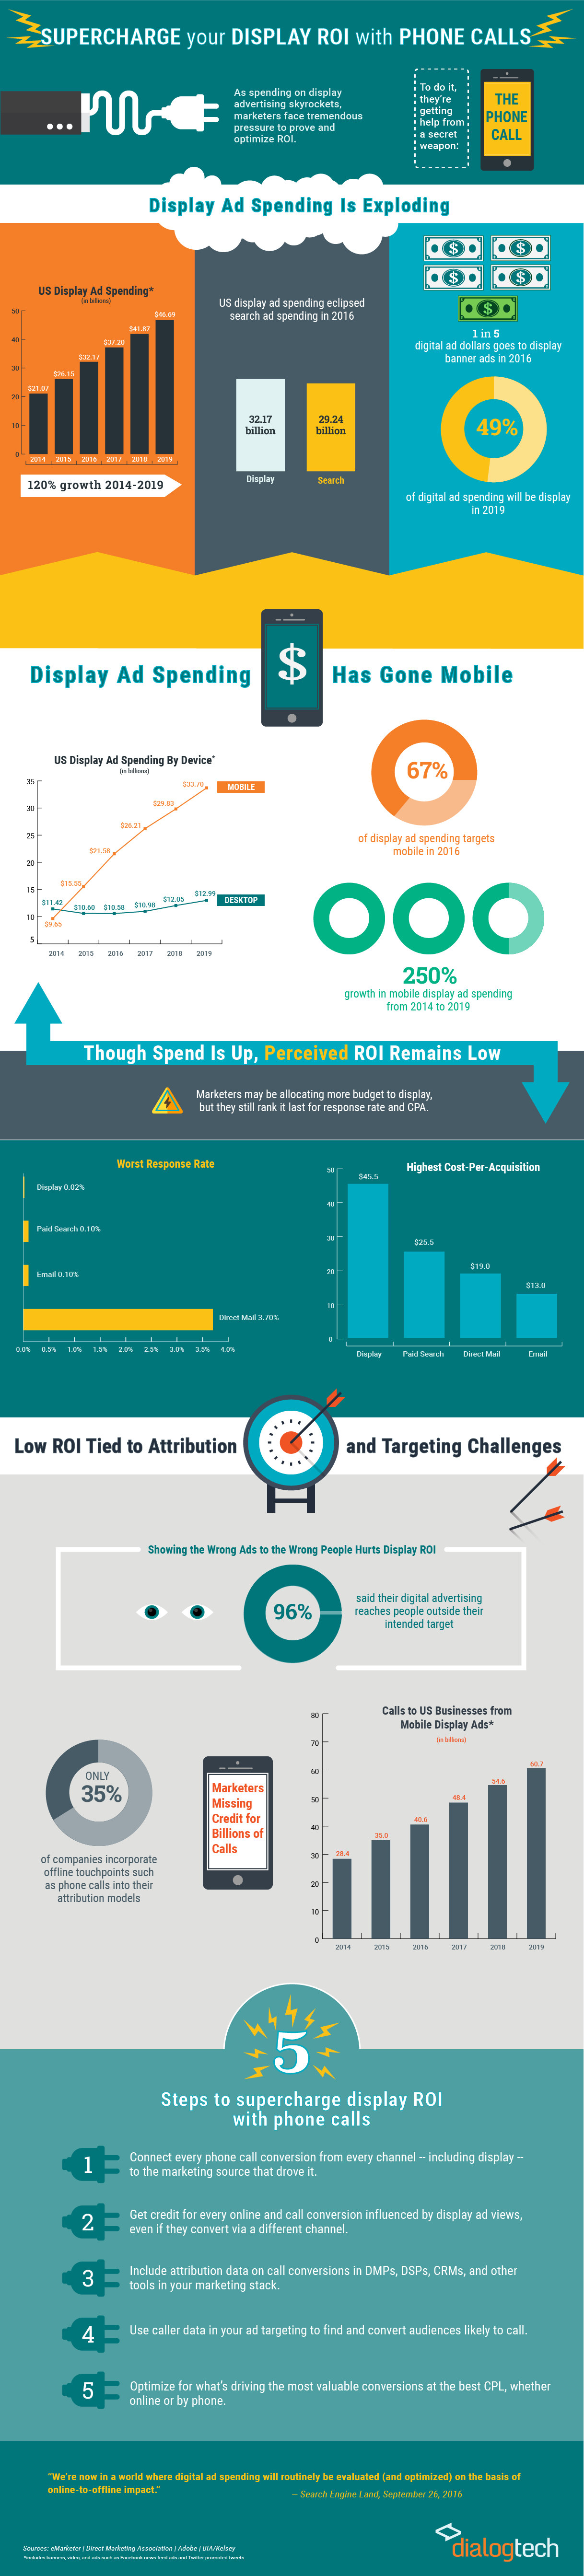 Supercharge Your Display Ad ROI With Call Attribution [Infographic]